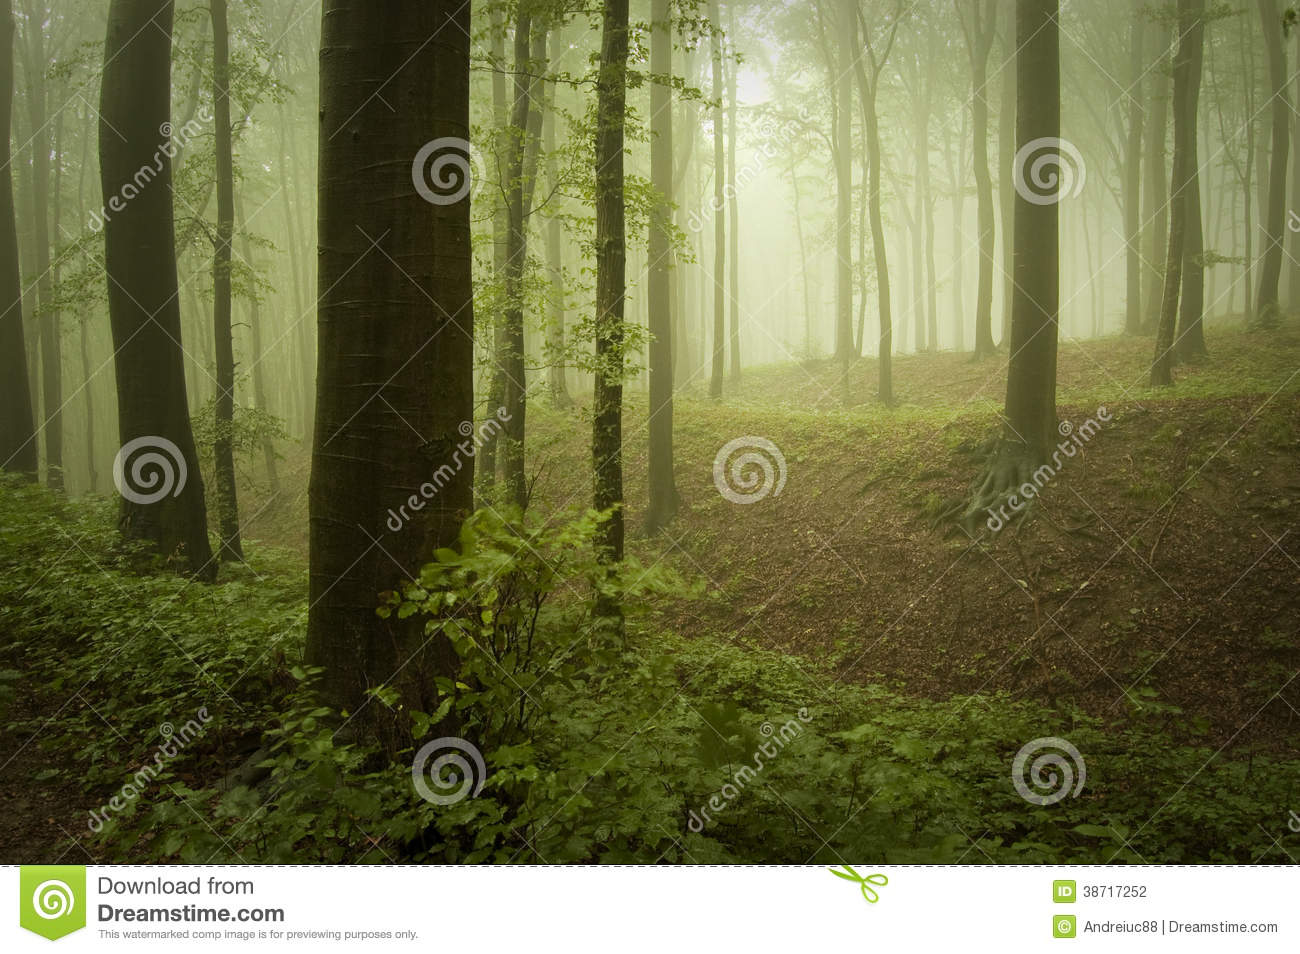 Green forest with vegetation and fog